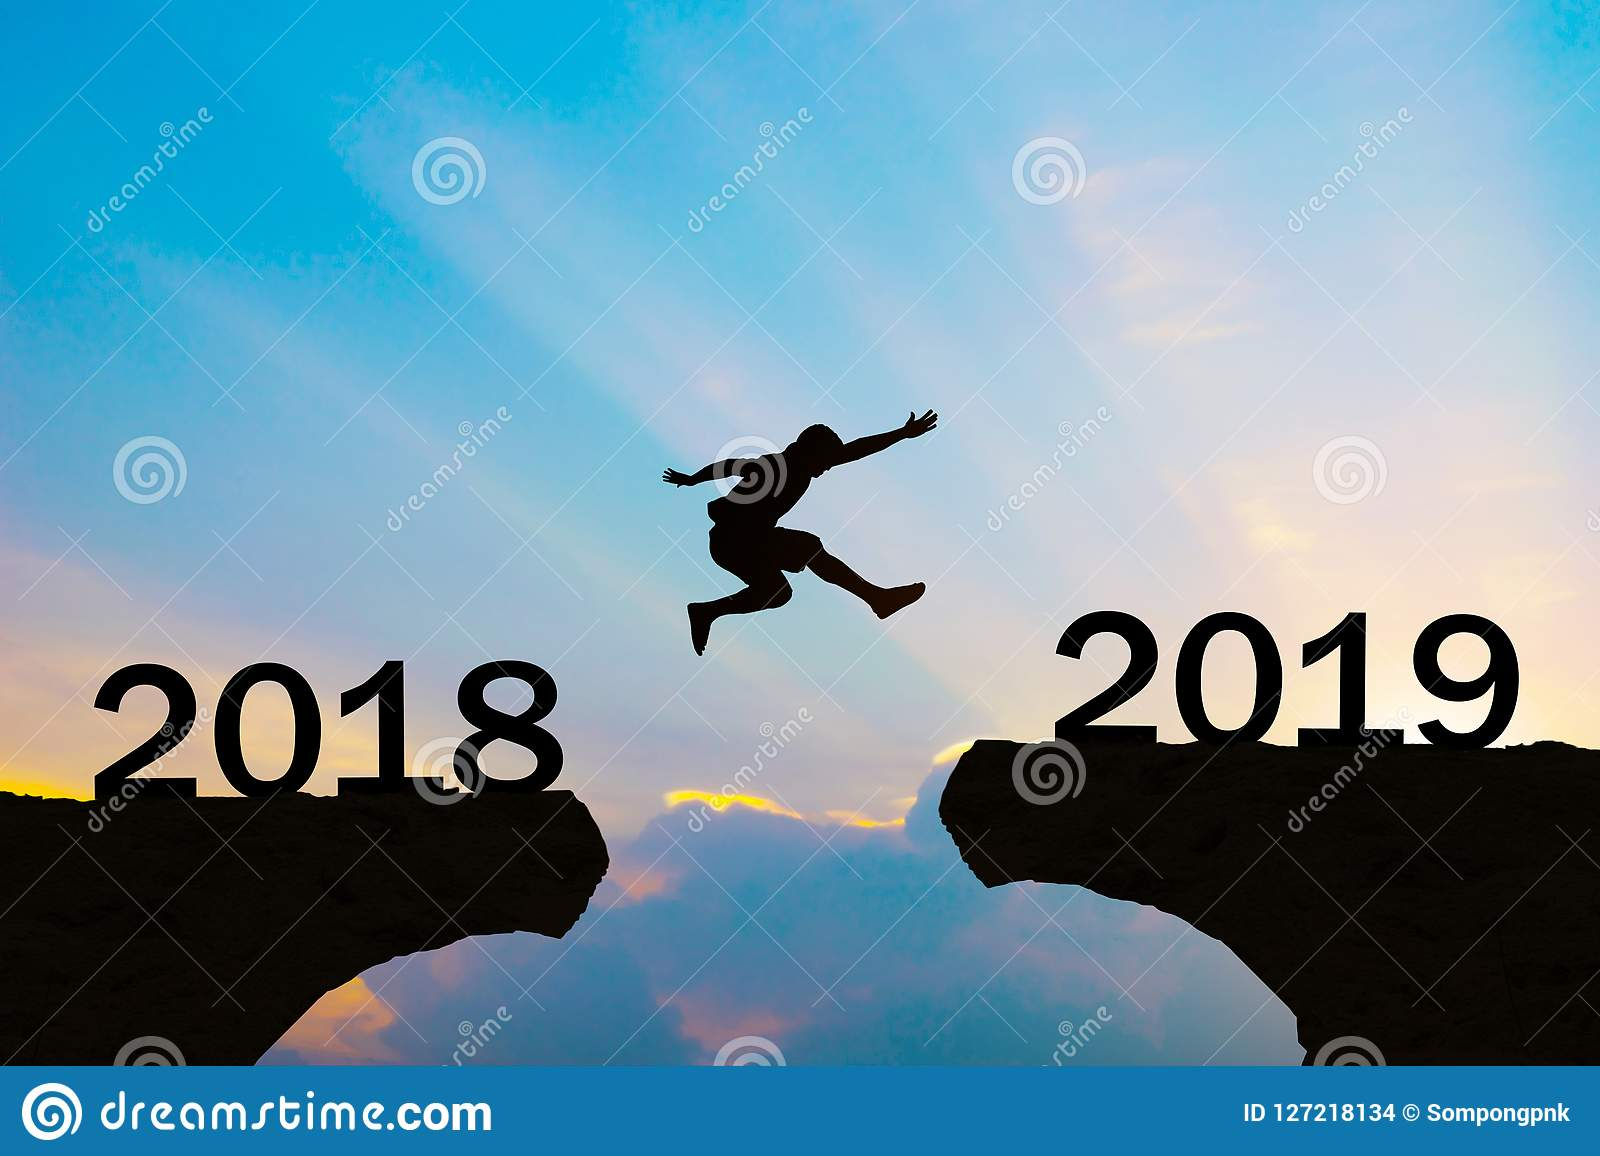 happy new year 2019 men jump over silhouette mountains